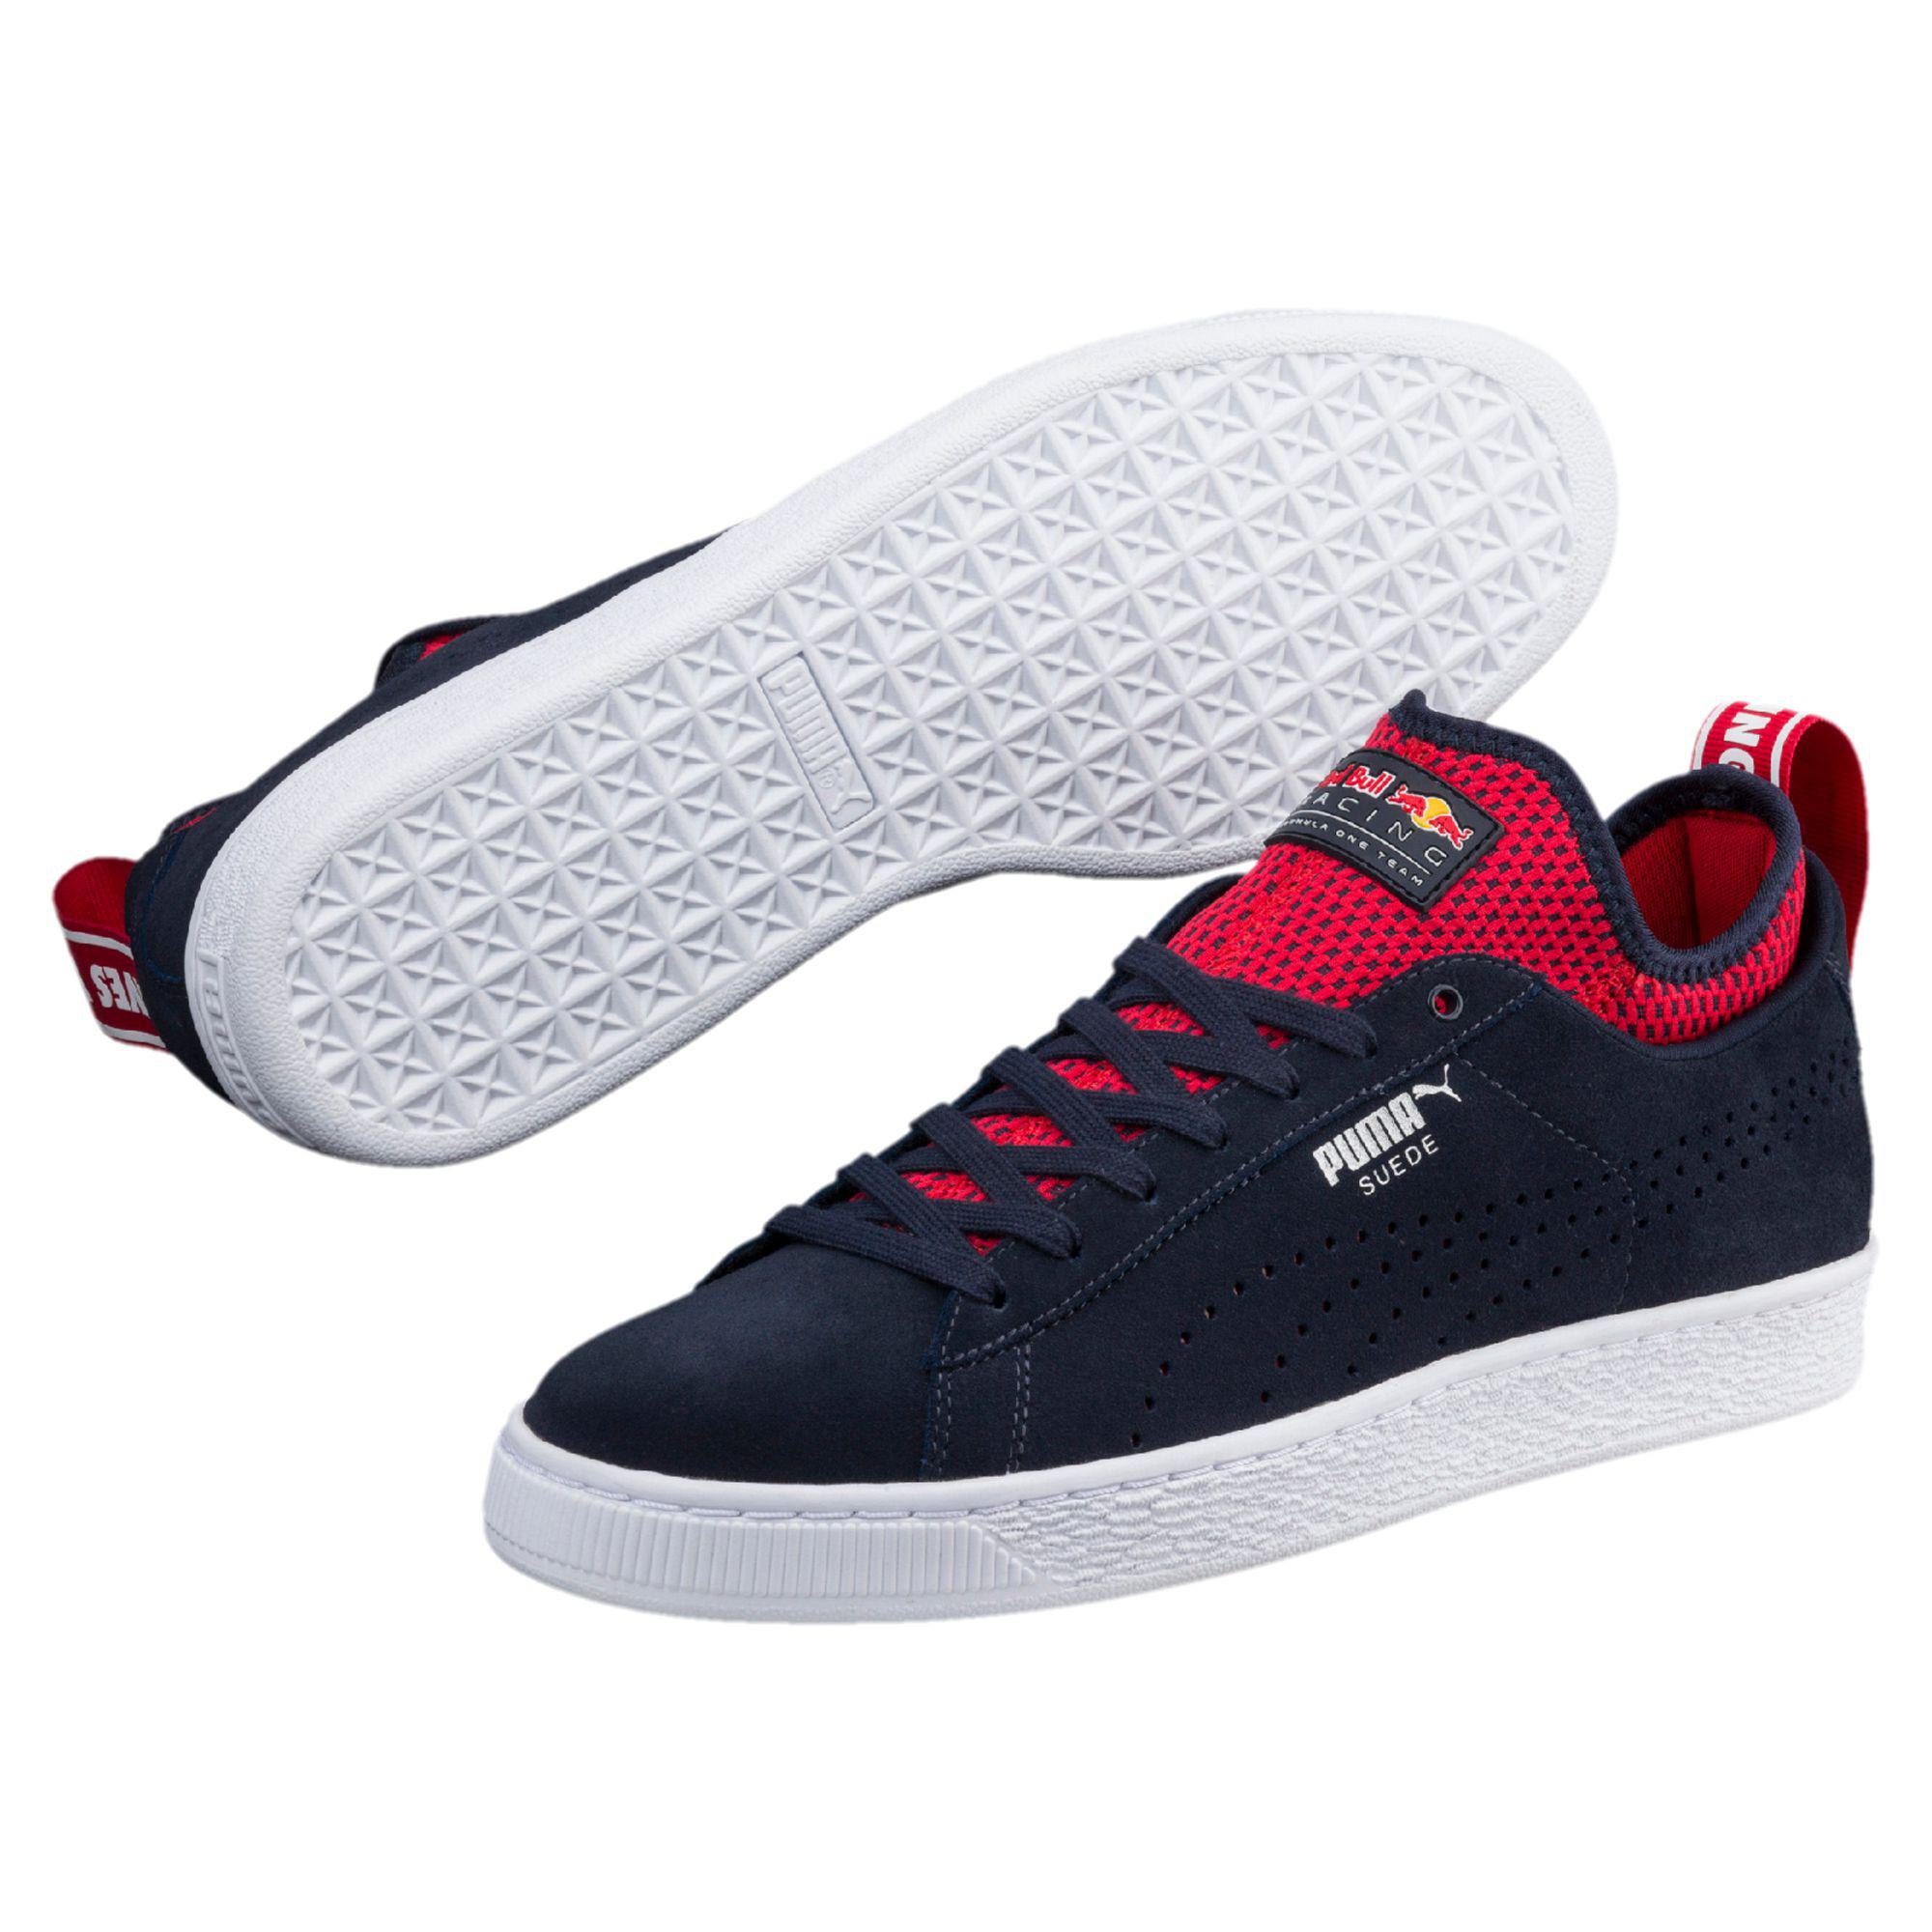 PUMA Red Bull Racing Suede Sneakers for